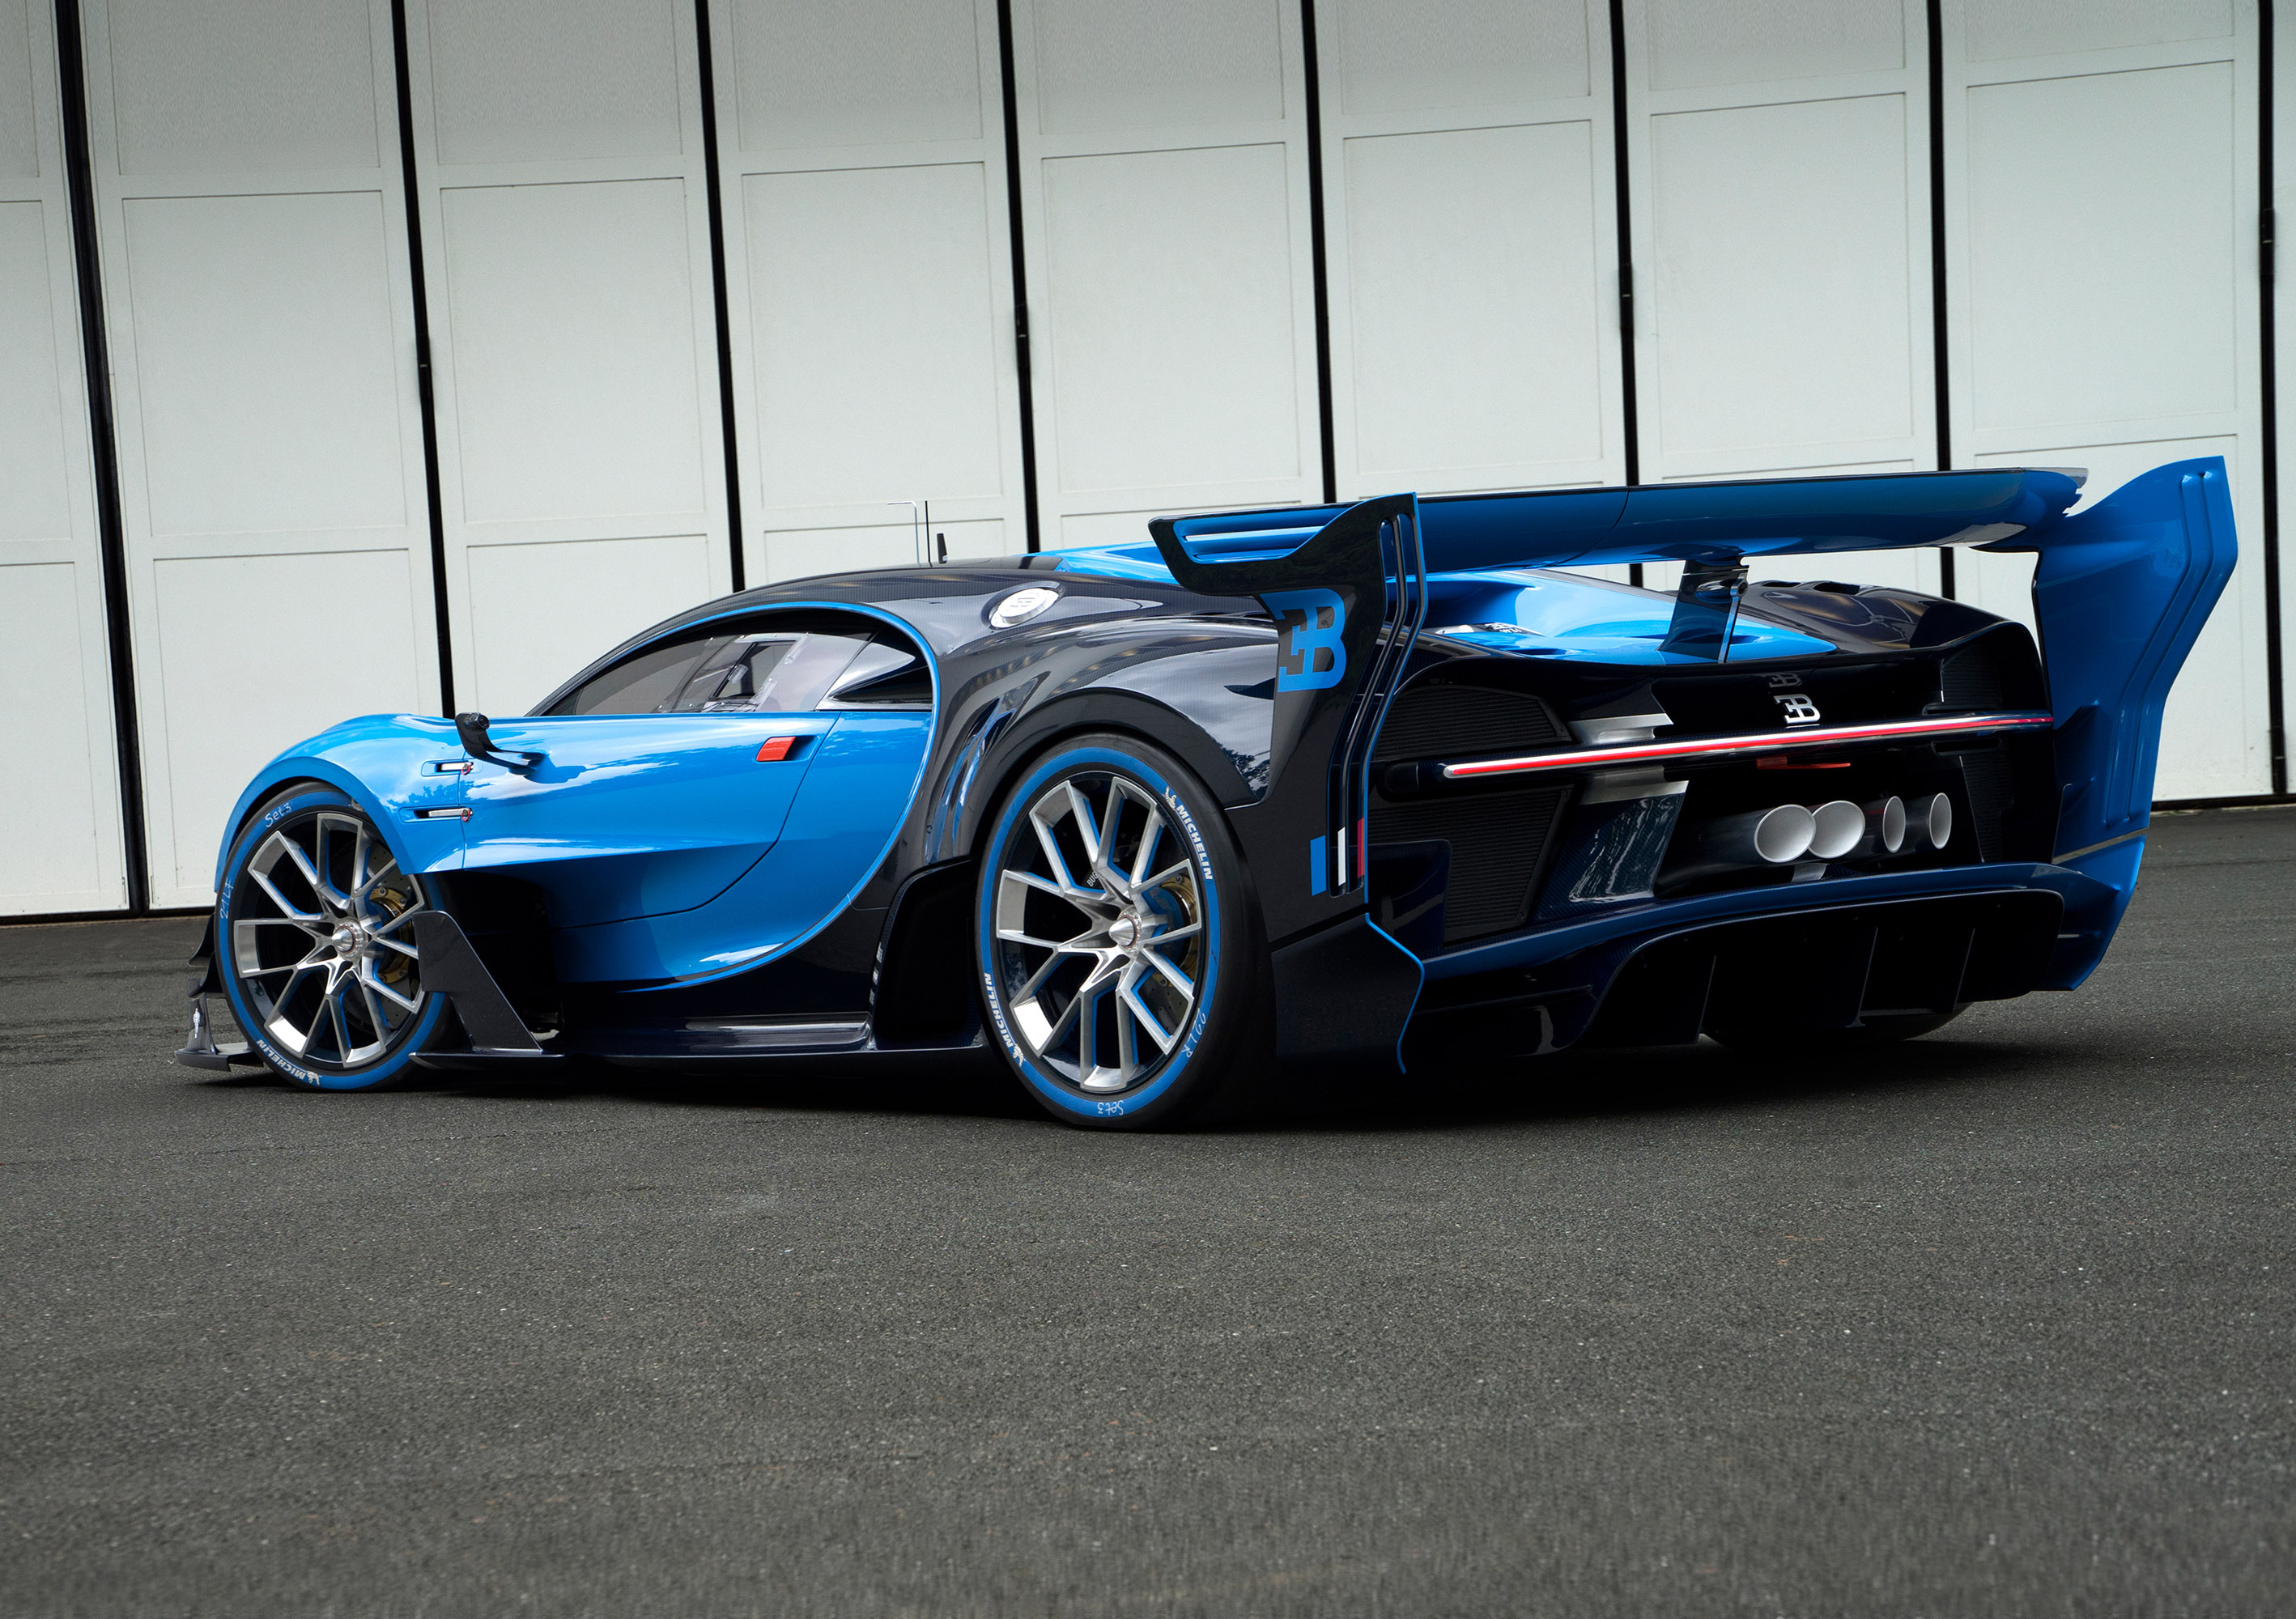 2015 bugatti vision gran turismo concept is here to demonstrate stunning style and incredible. Black Bedroom Furniture Sets. Home Design Ideas